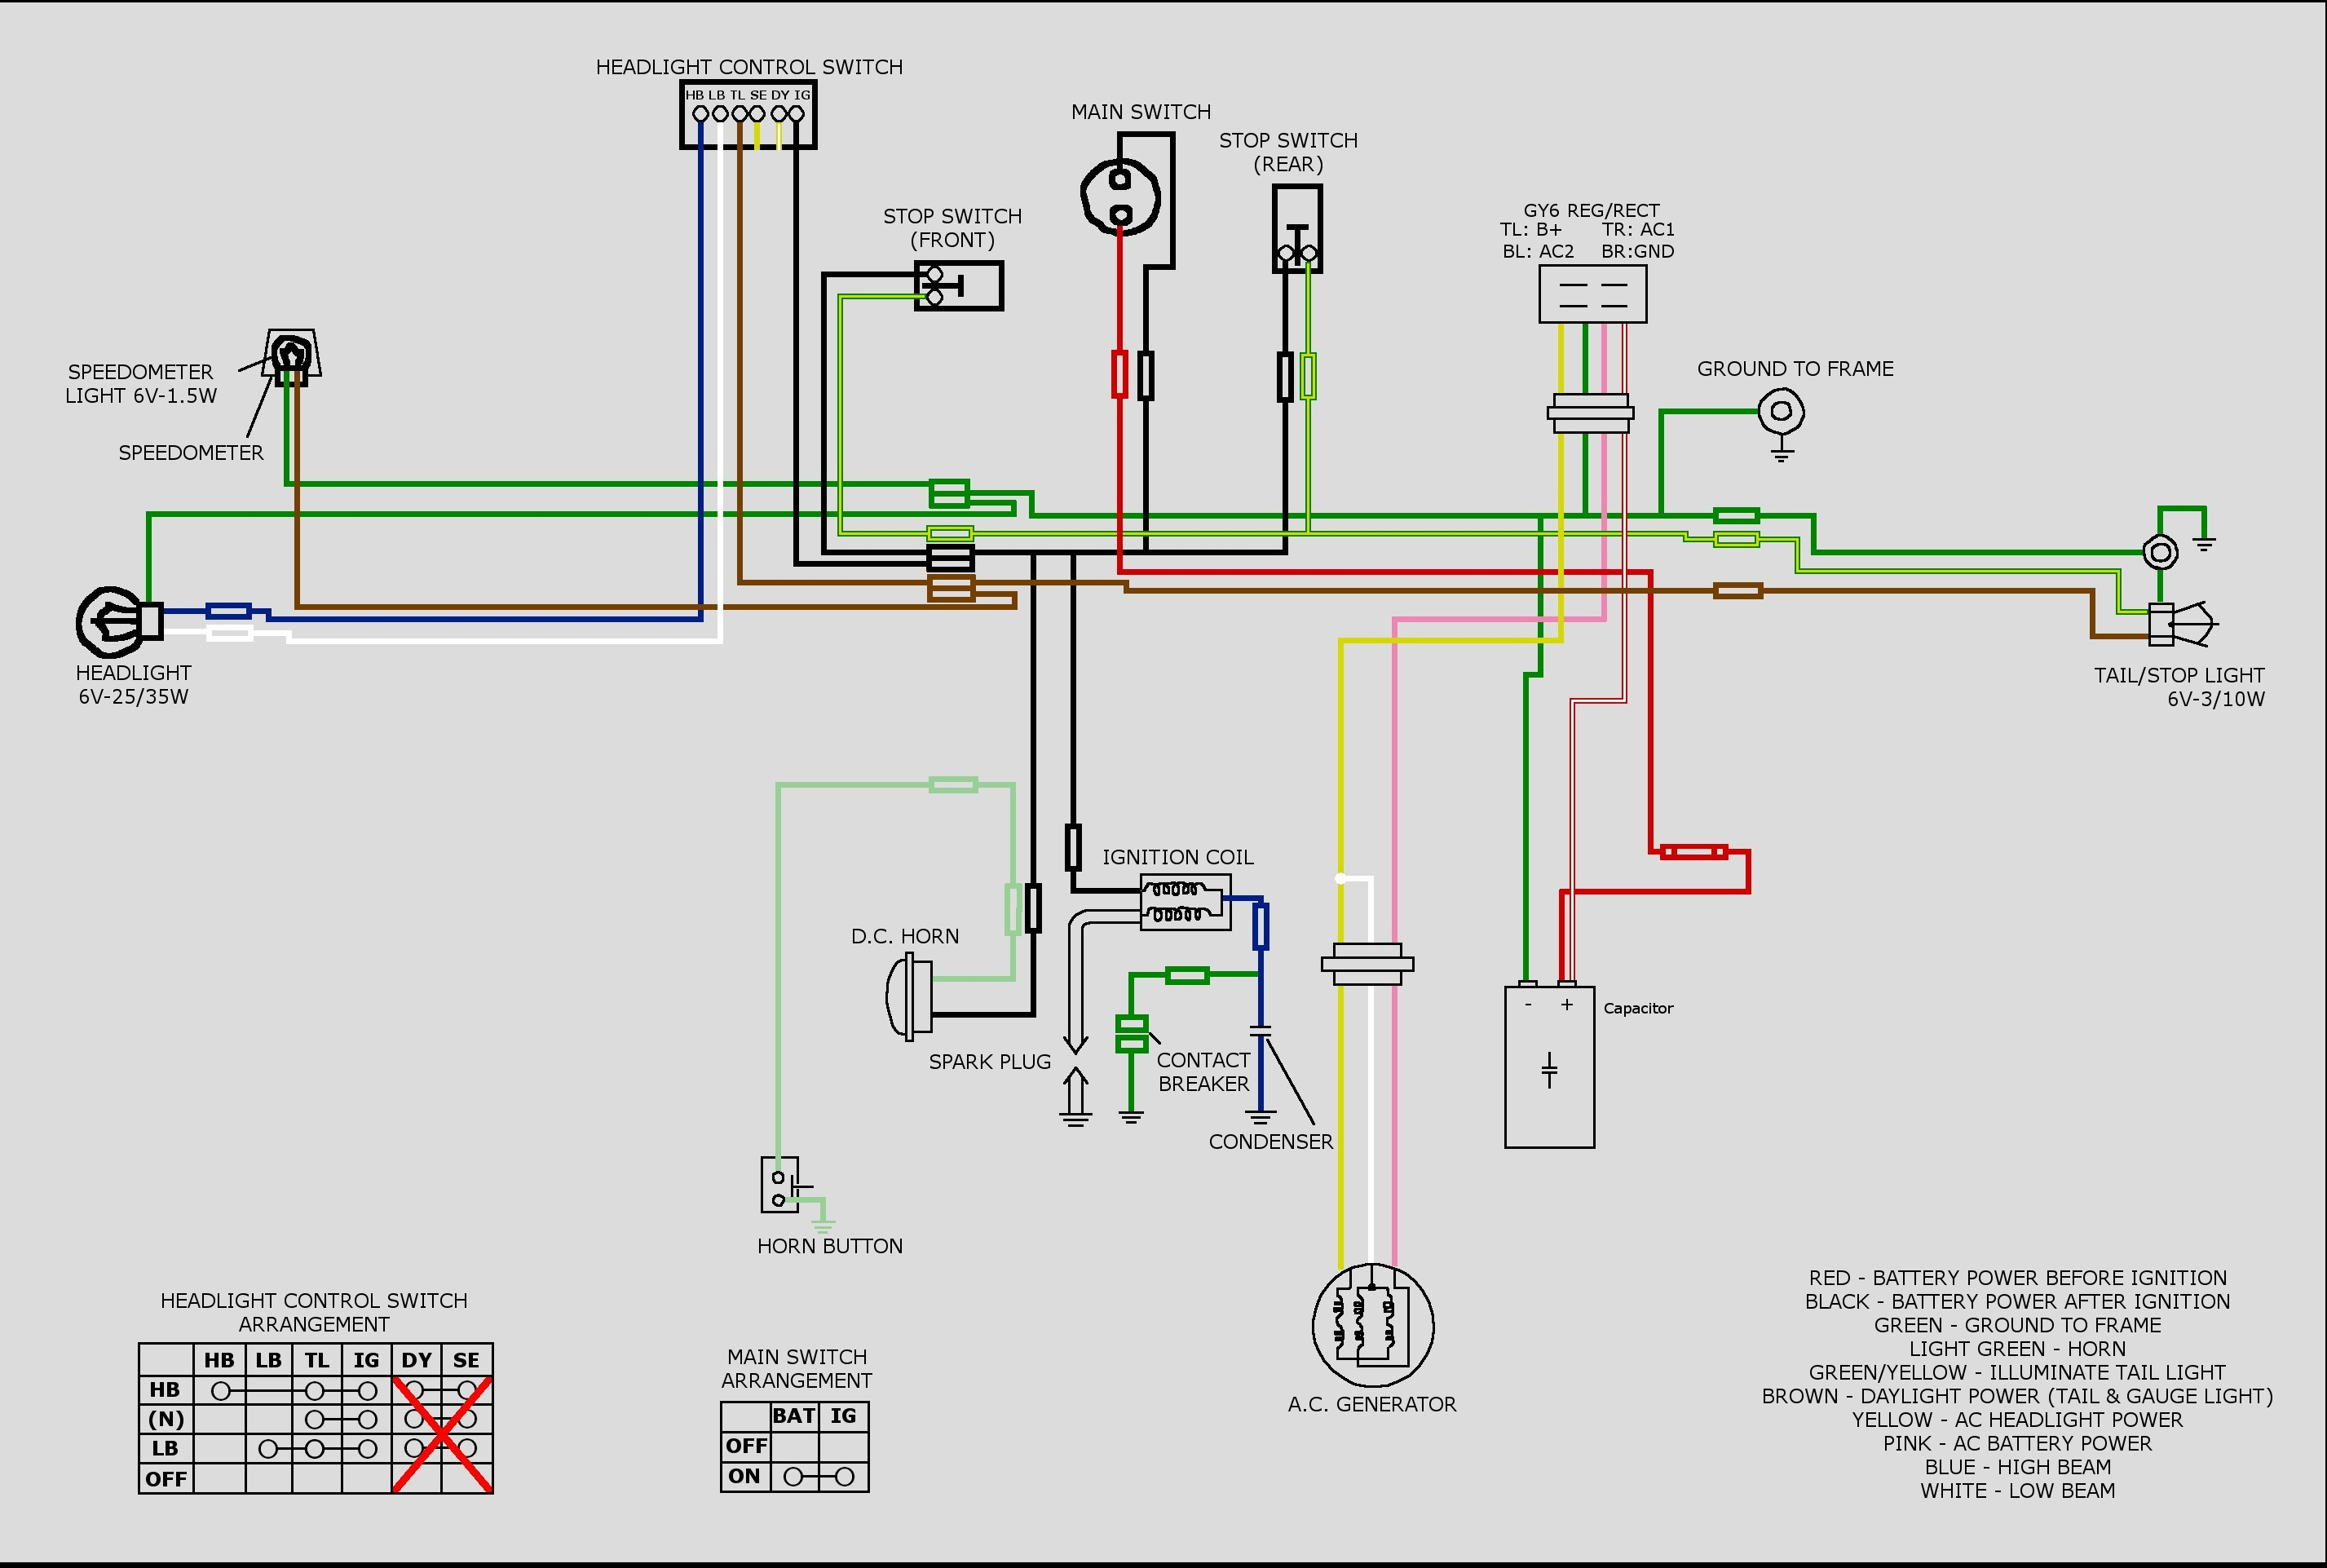 Tao Tao 150cc Scooter Wiring Diagram | Wiring Liry Jazz Eurosd Cc Scooter Wiring Diagram on